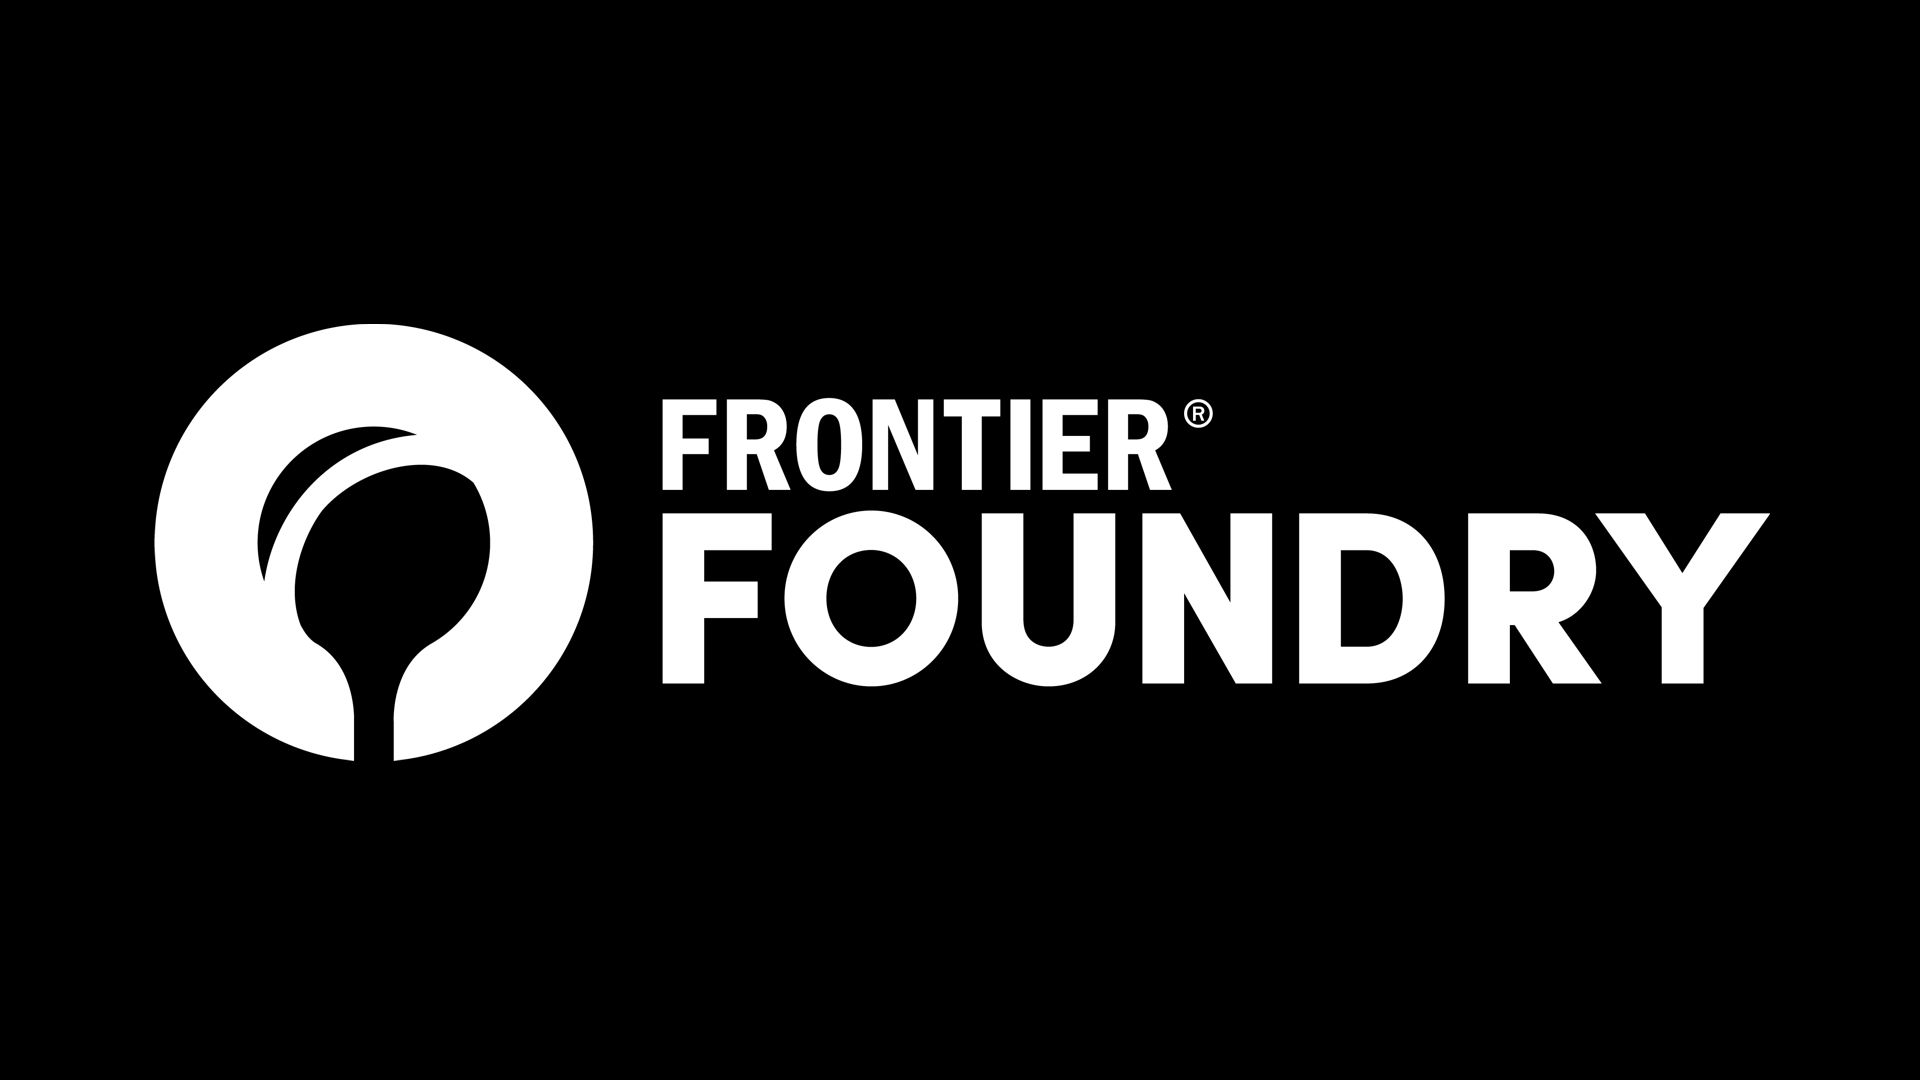 Frontier Foundry